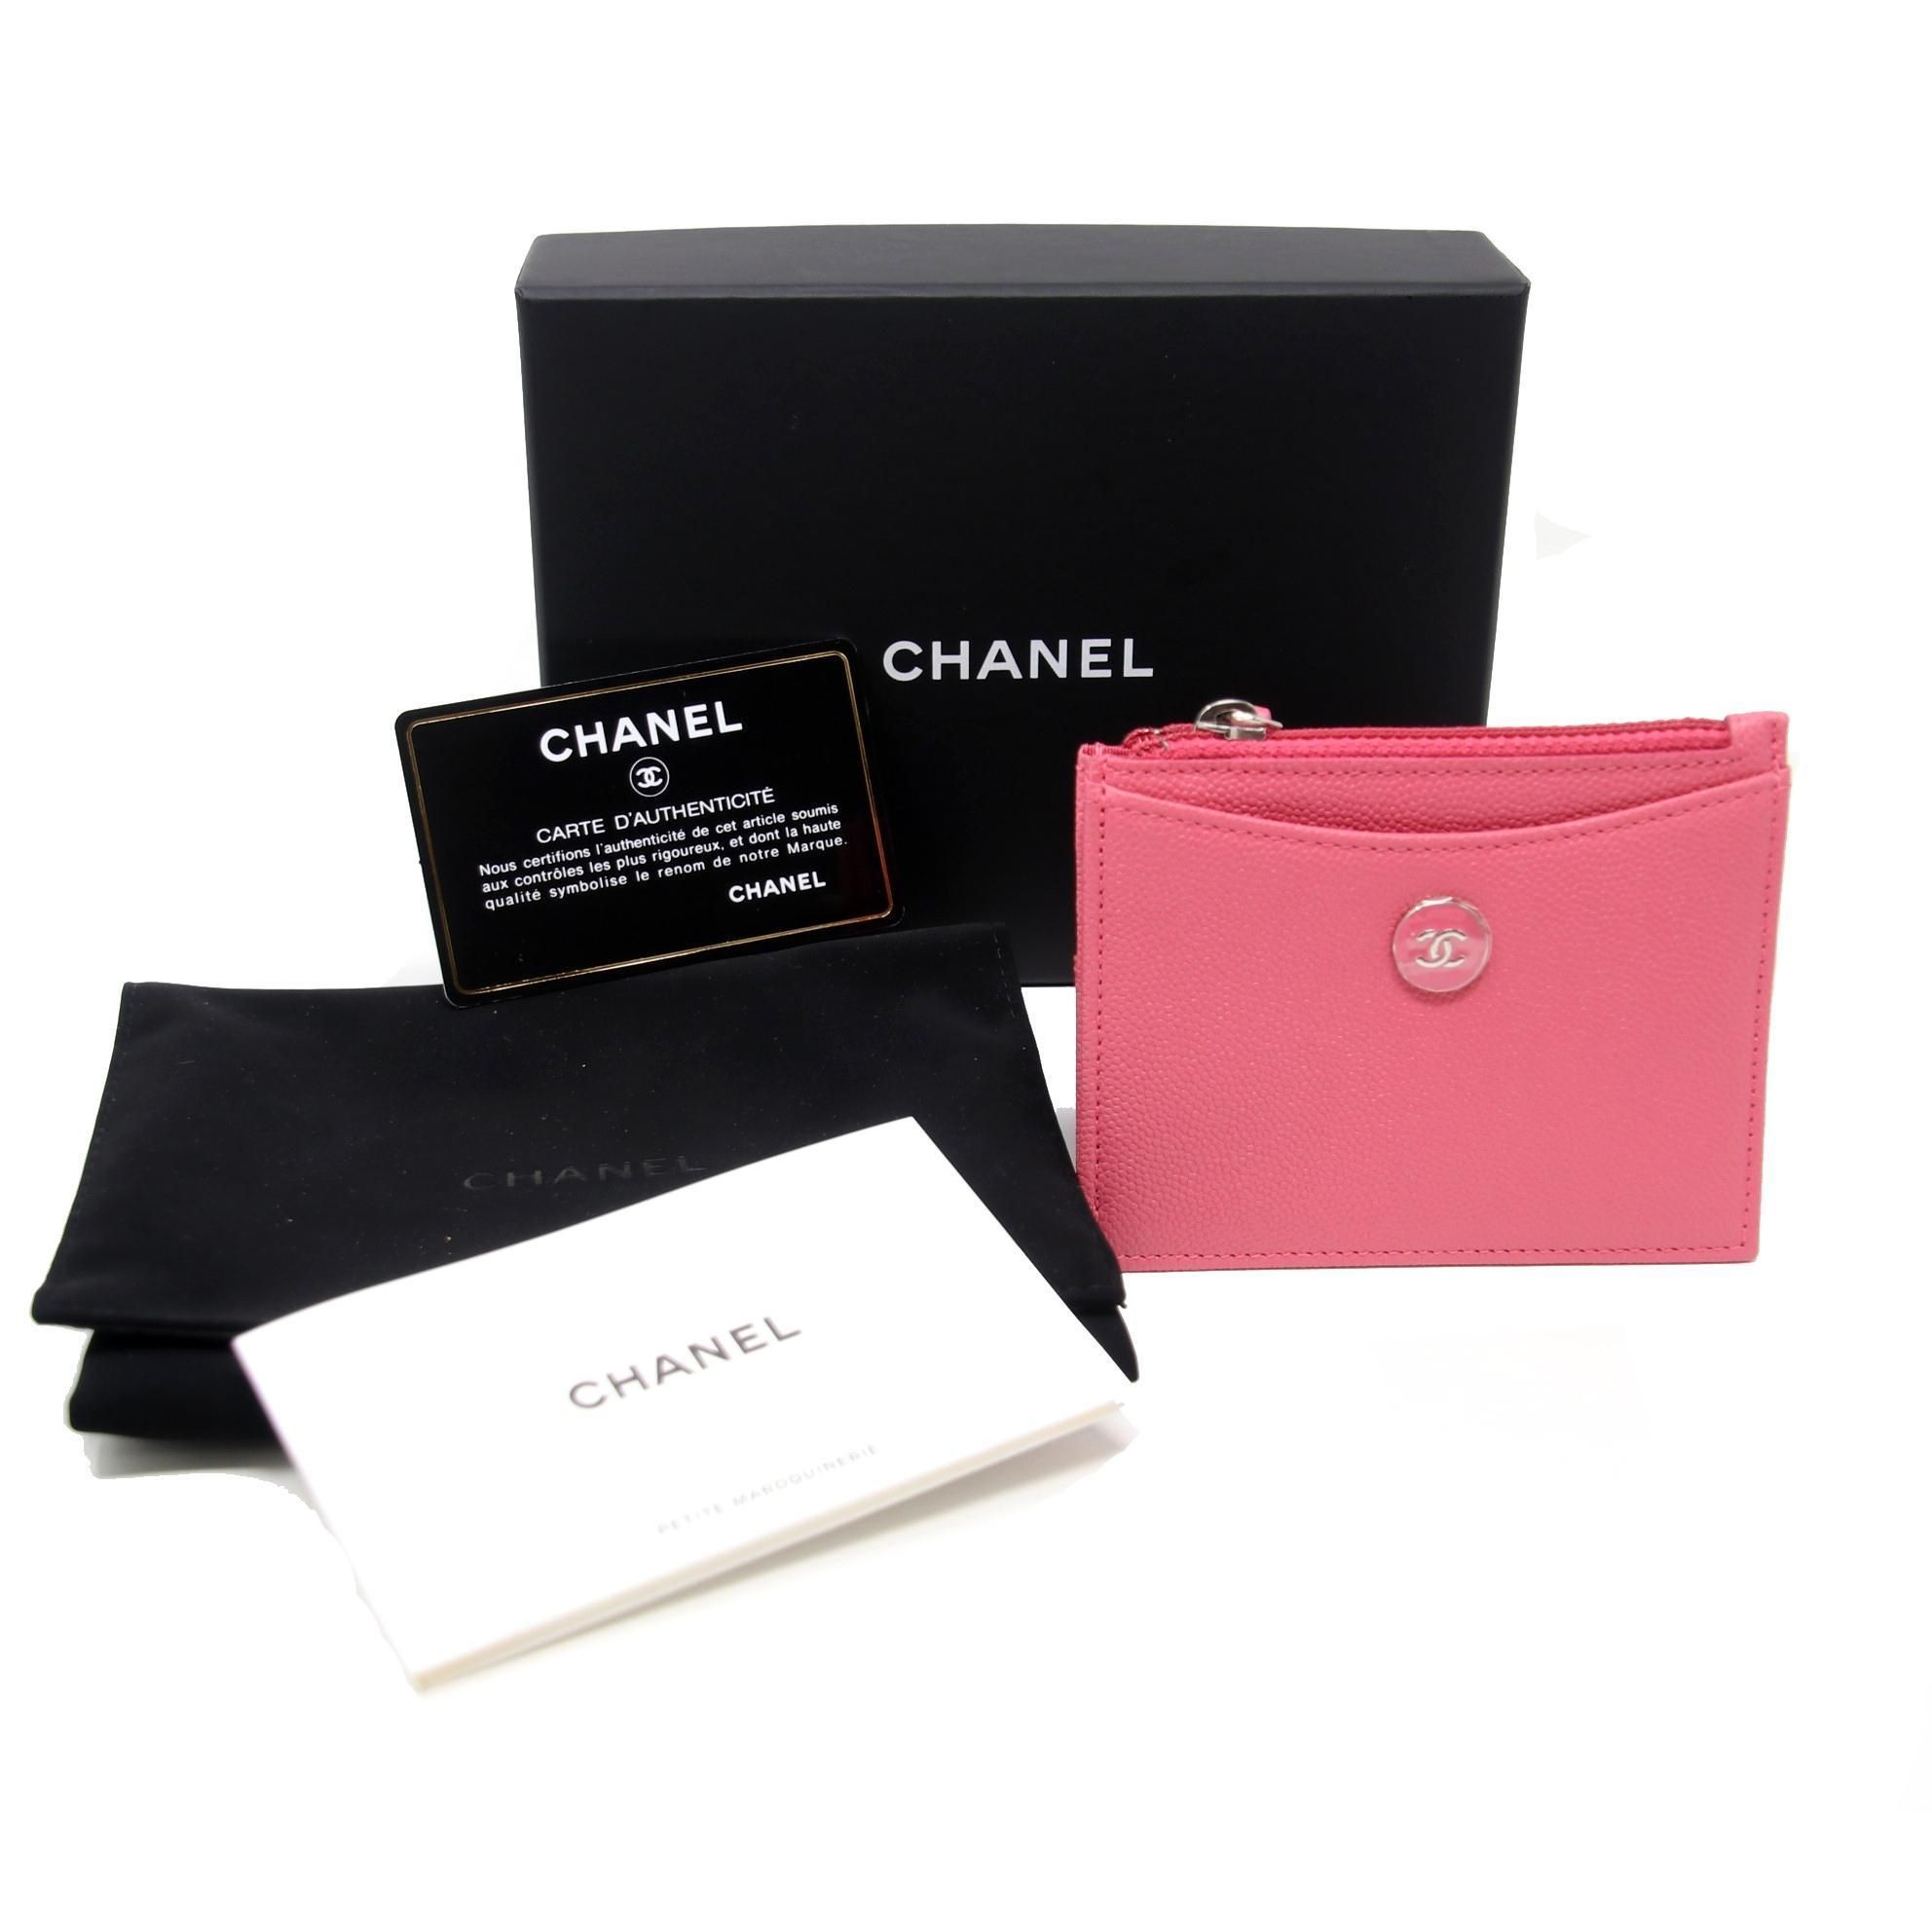 37732b374546 Chanel Caviar Leather CC Zip Card Holder Wallet in 2019 | Capsule ...